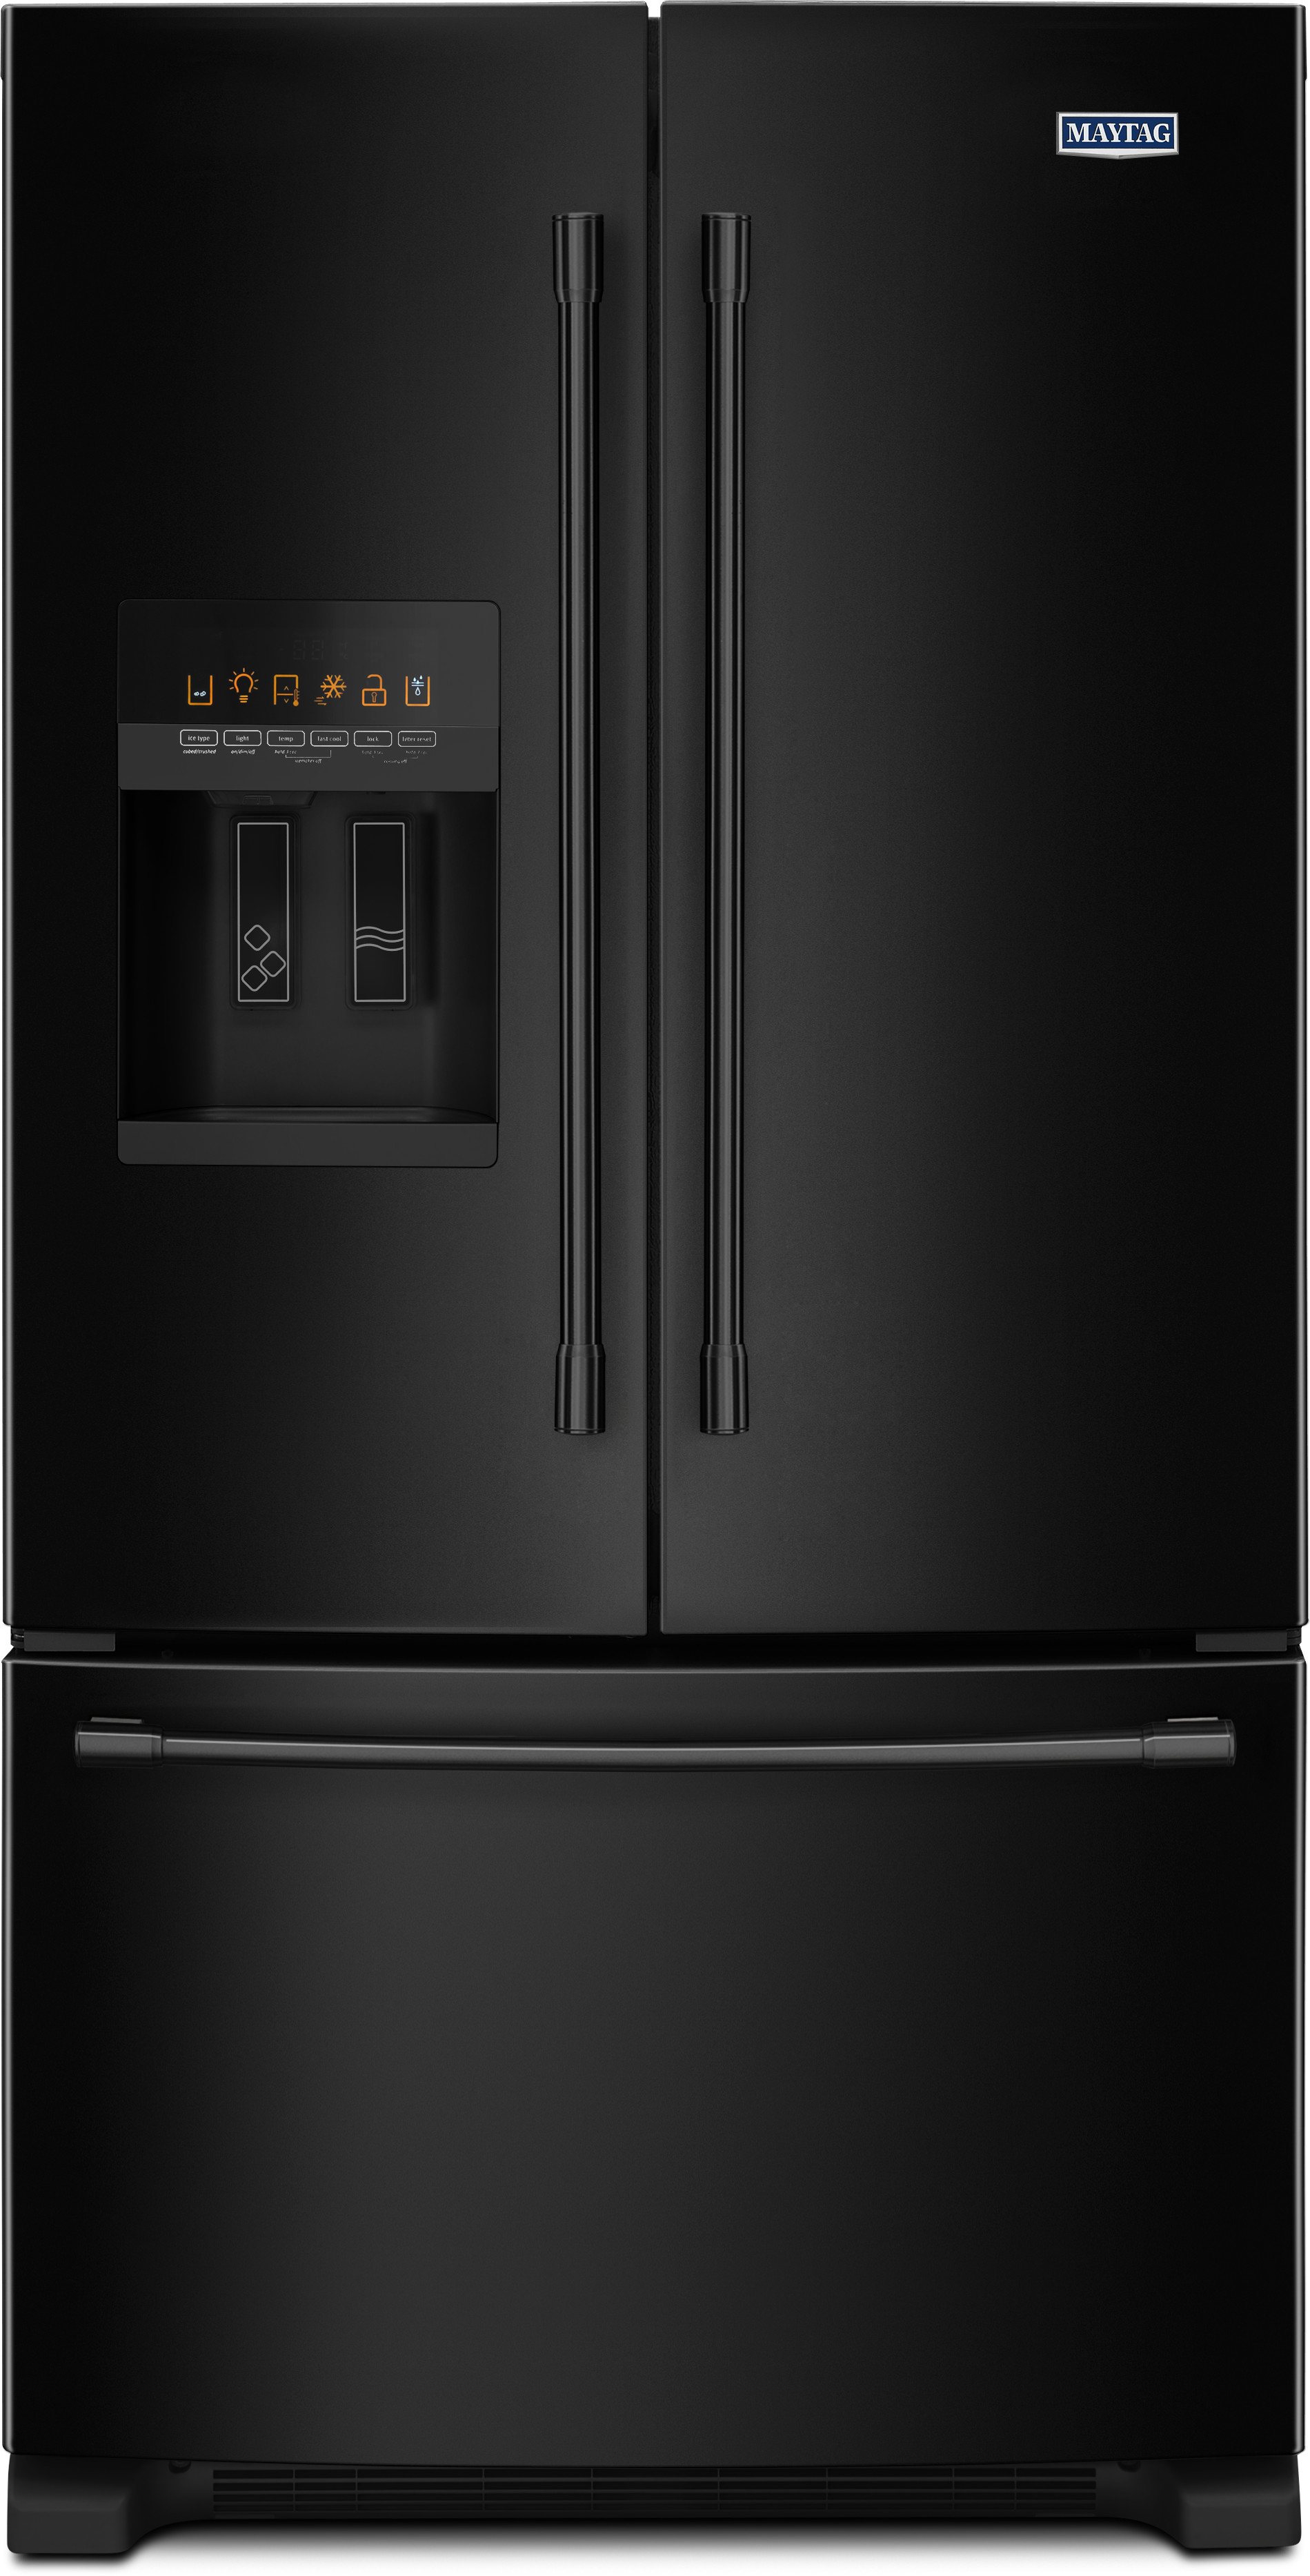 Buy A Maytag Refrigerator In Black White Stainless Steel